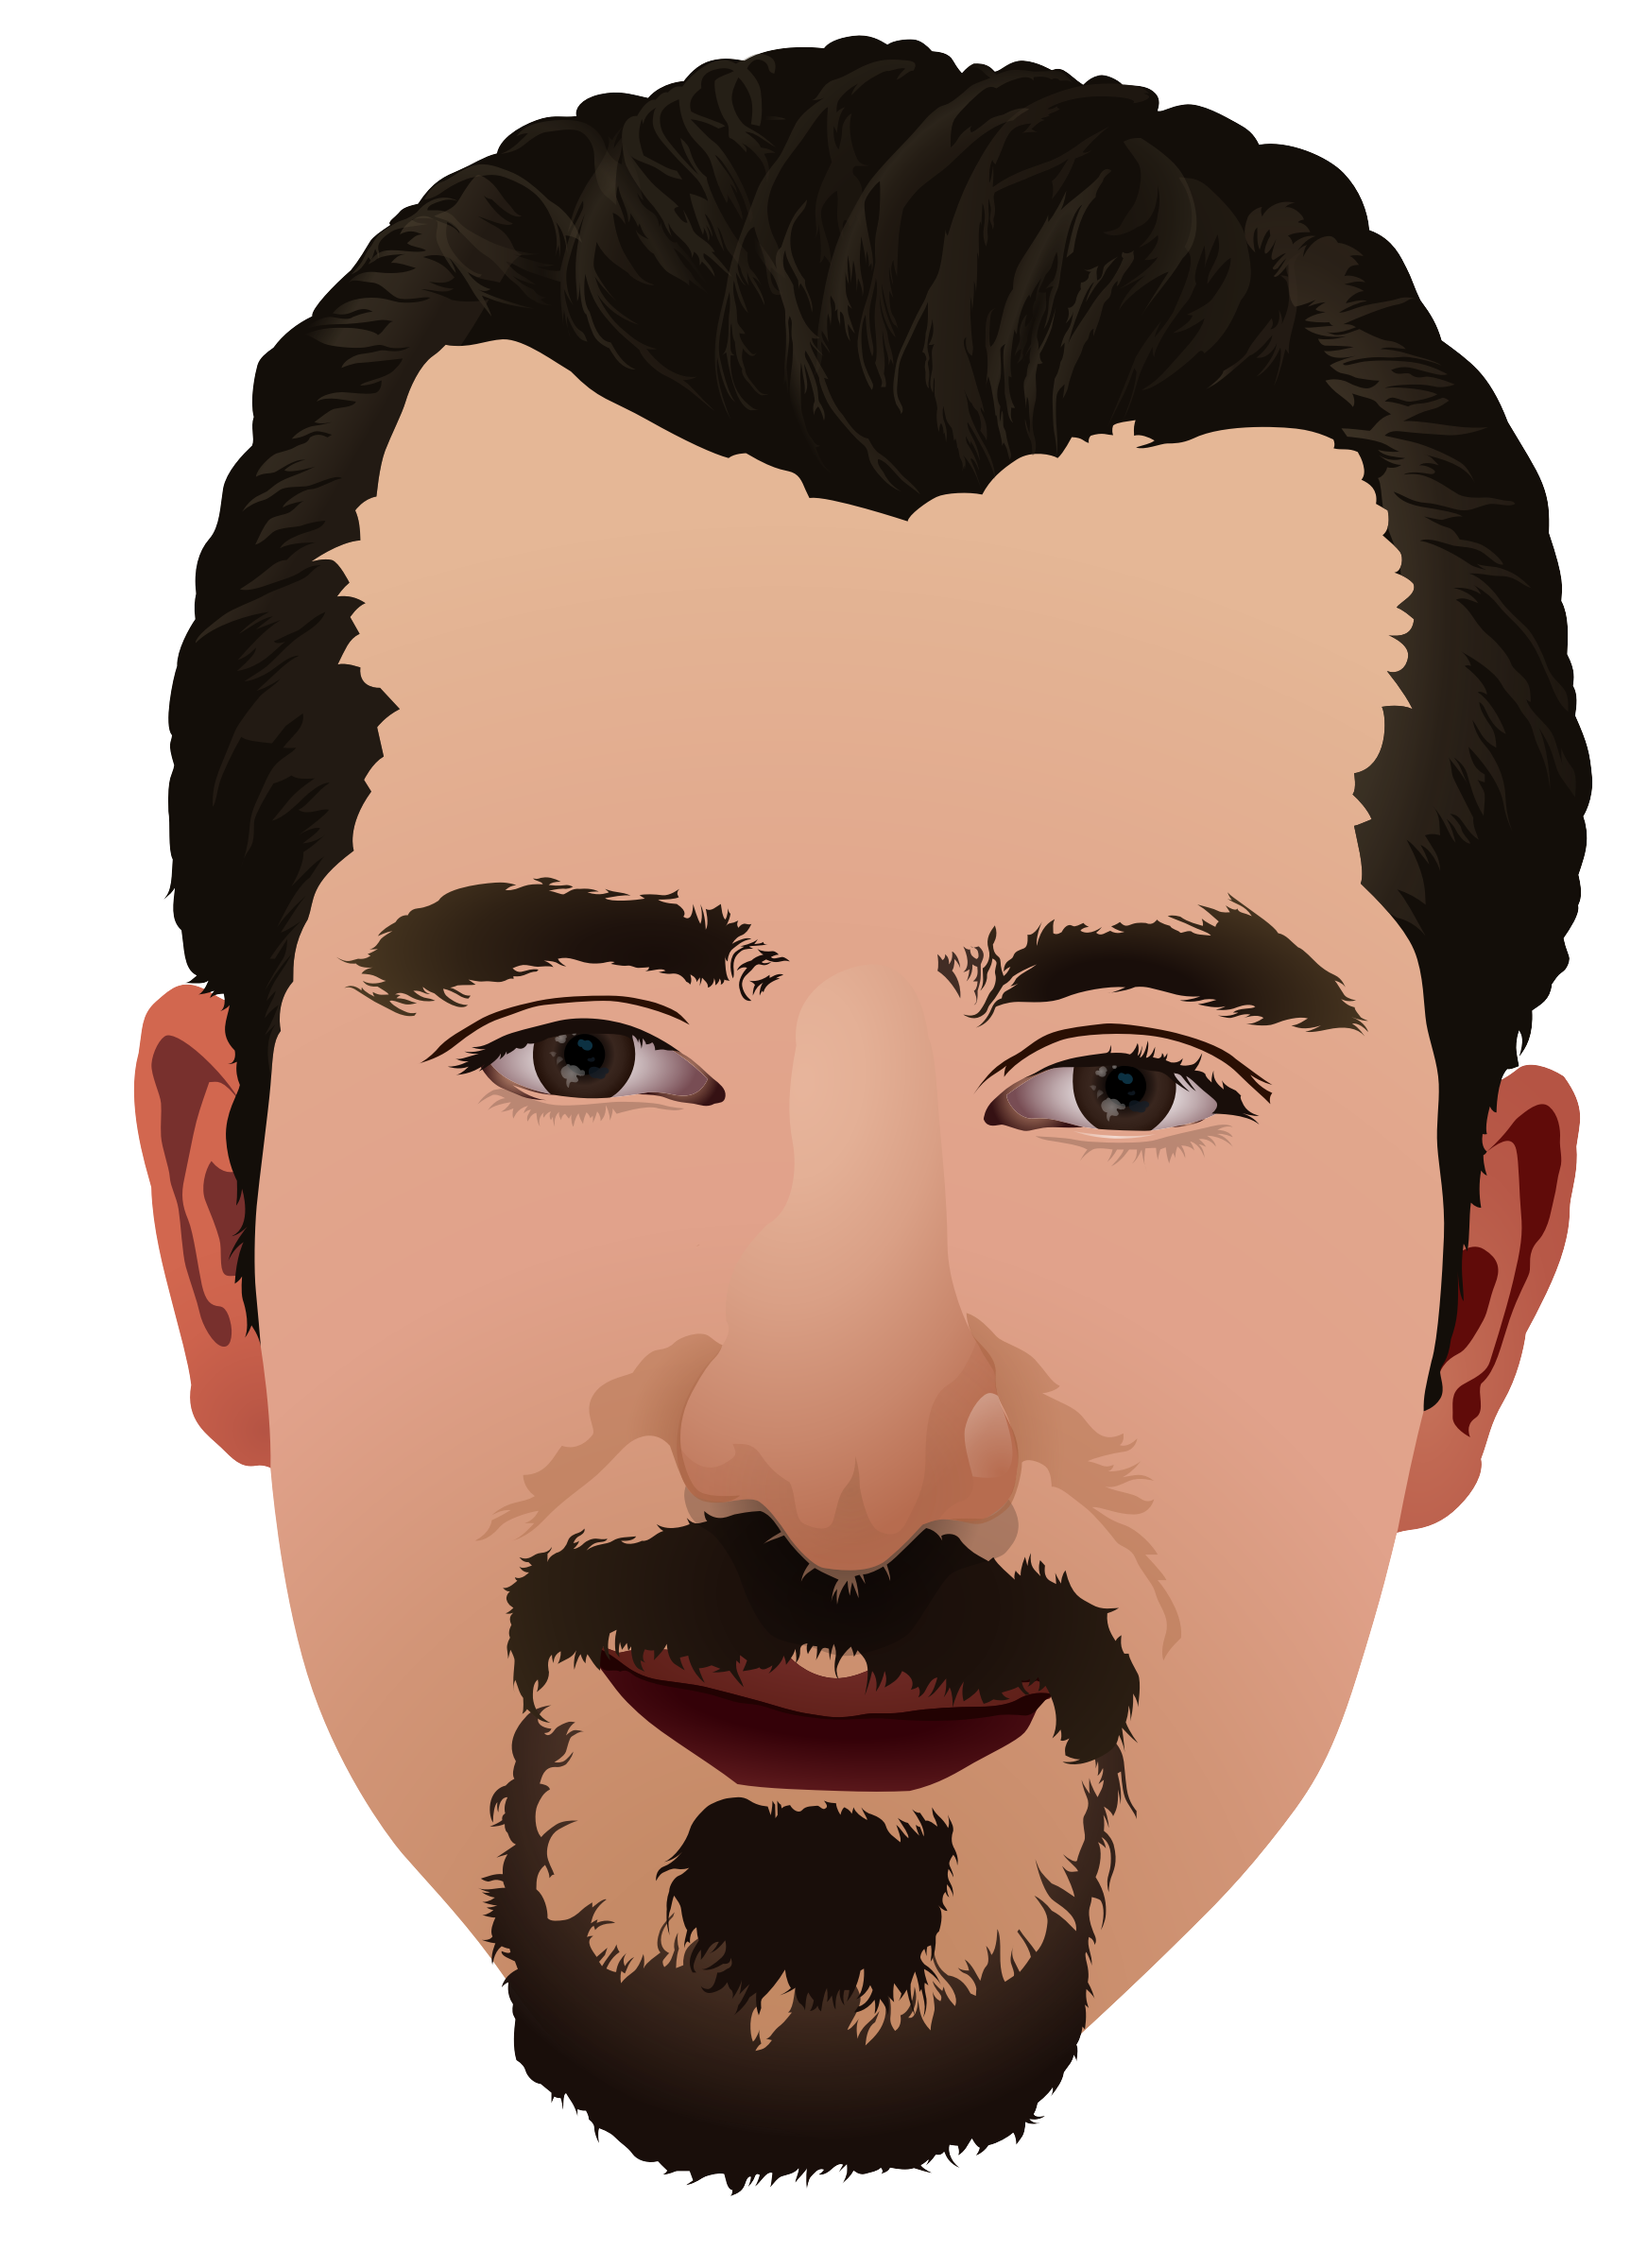 FREEBASSEL Detailed Avatar by freebassel